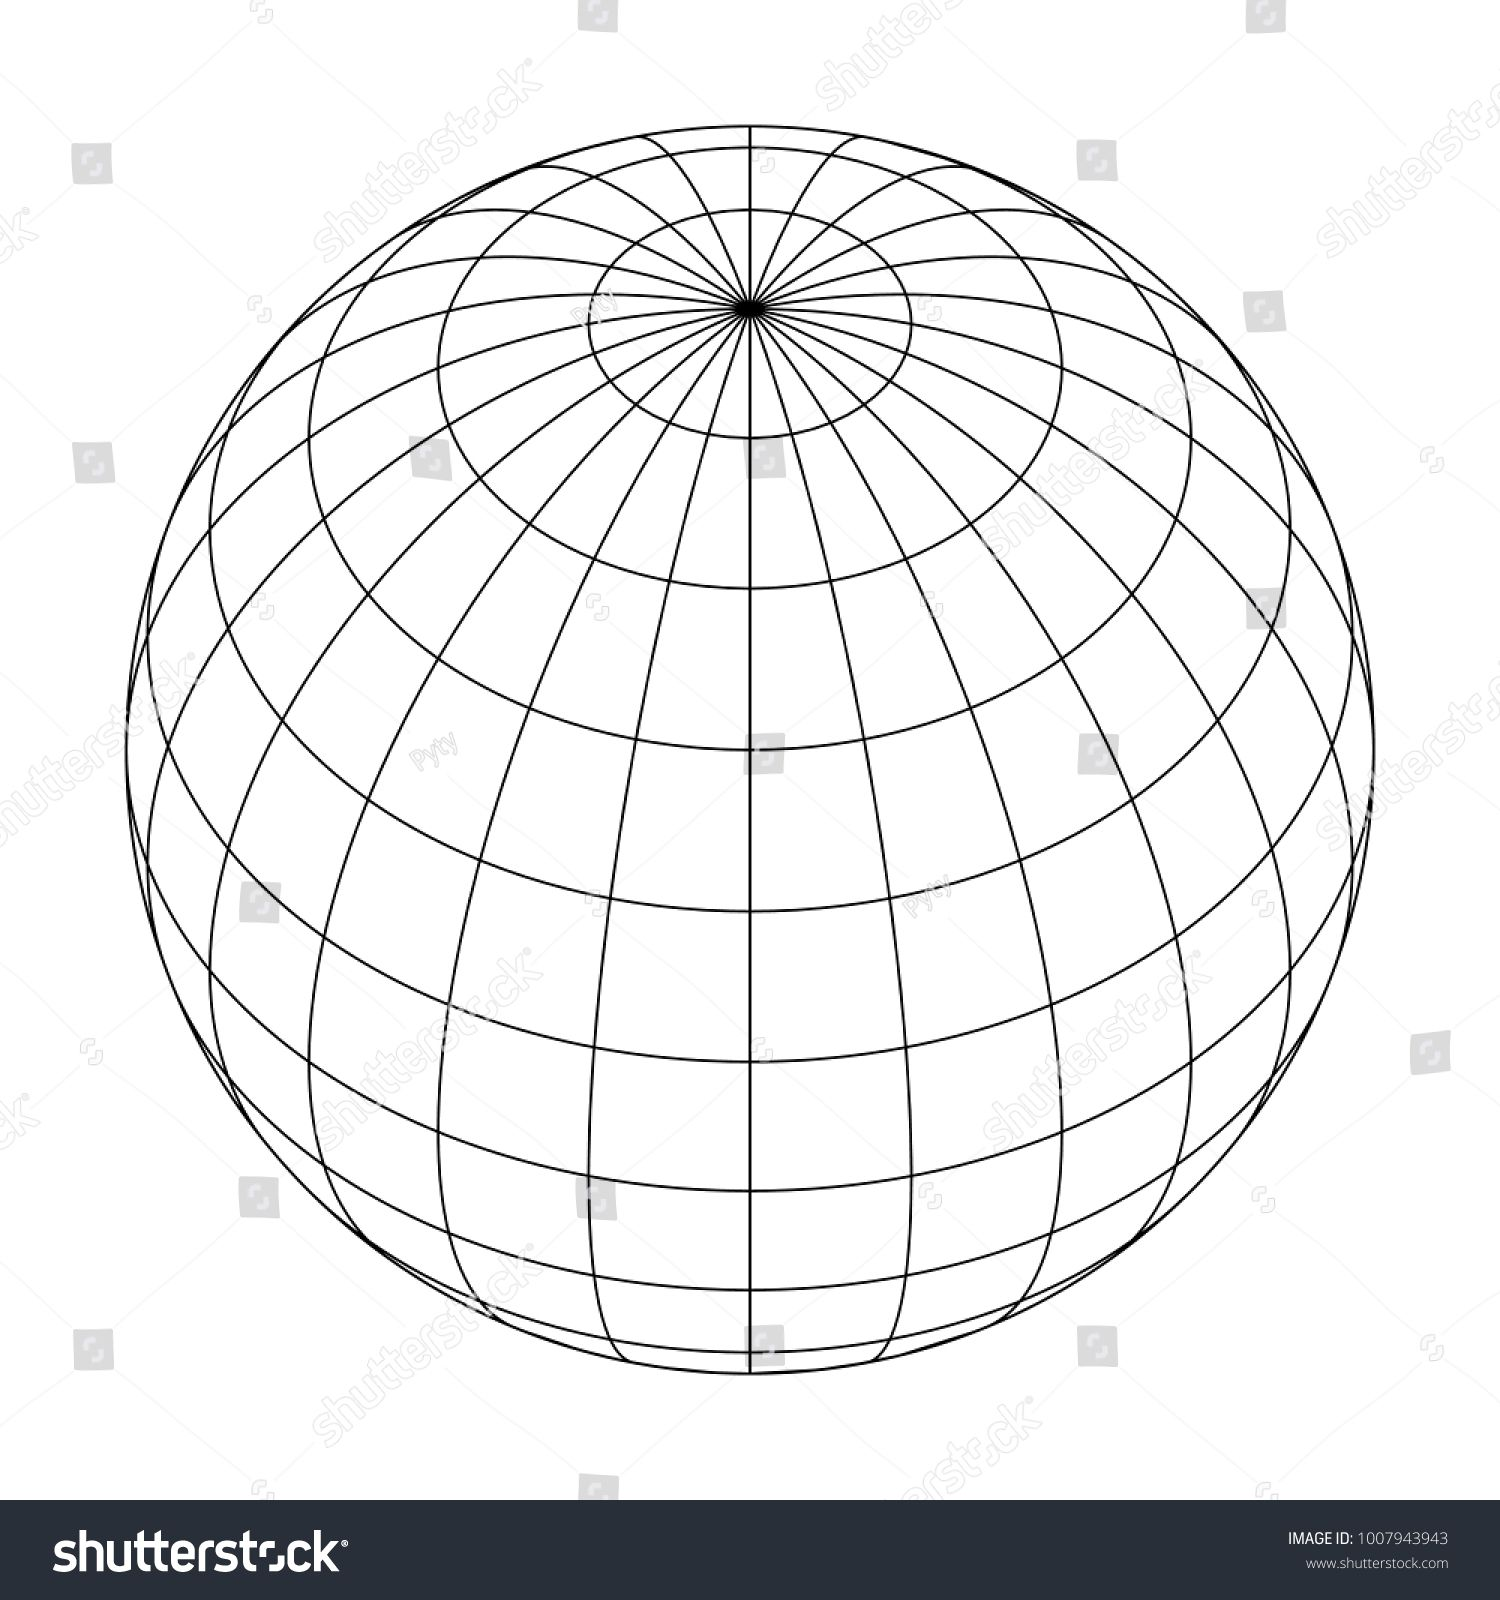 Earth Planet Globe Grid Of Meridians And Parallels Or Latitude And Longitude 3d Vector Illustration Sponso Planets Geometric Drawing Graphic Design Posters